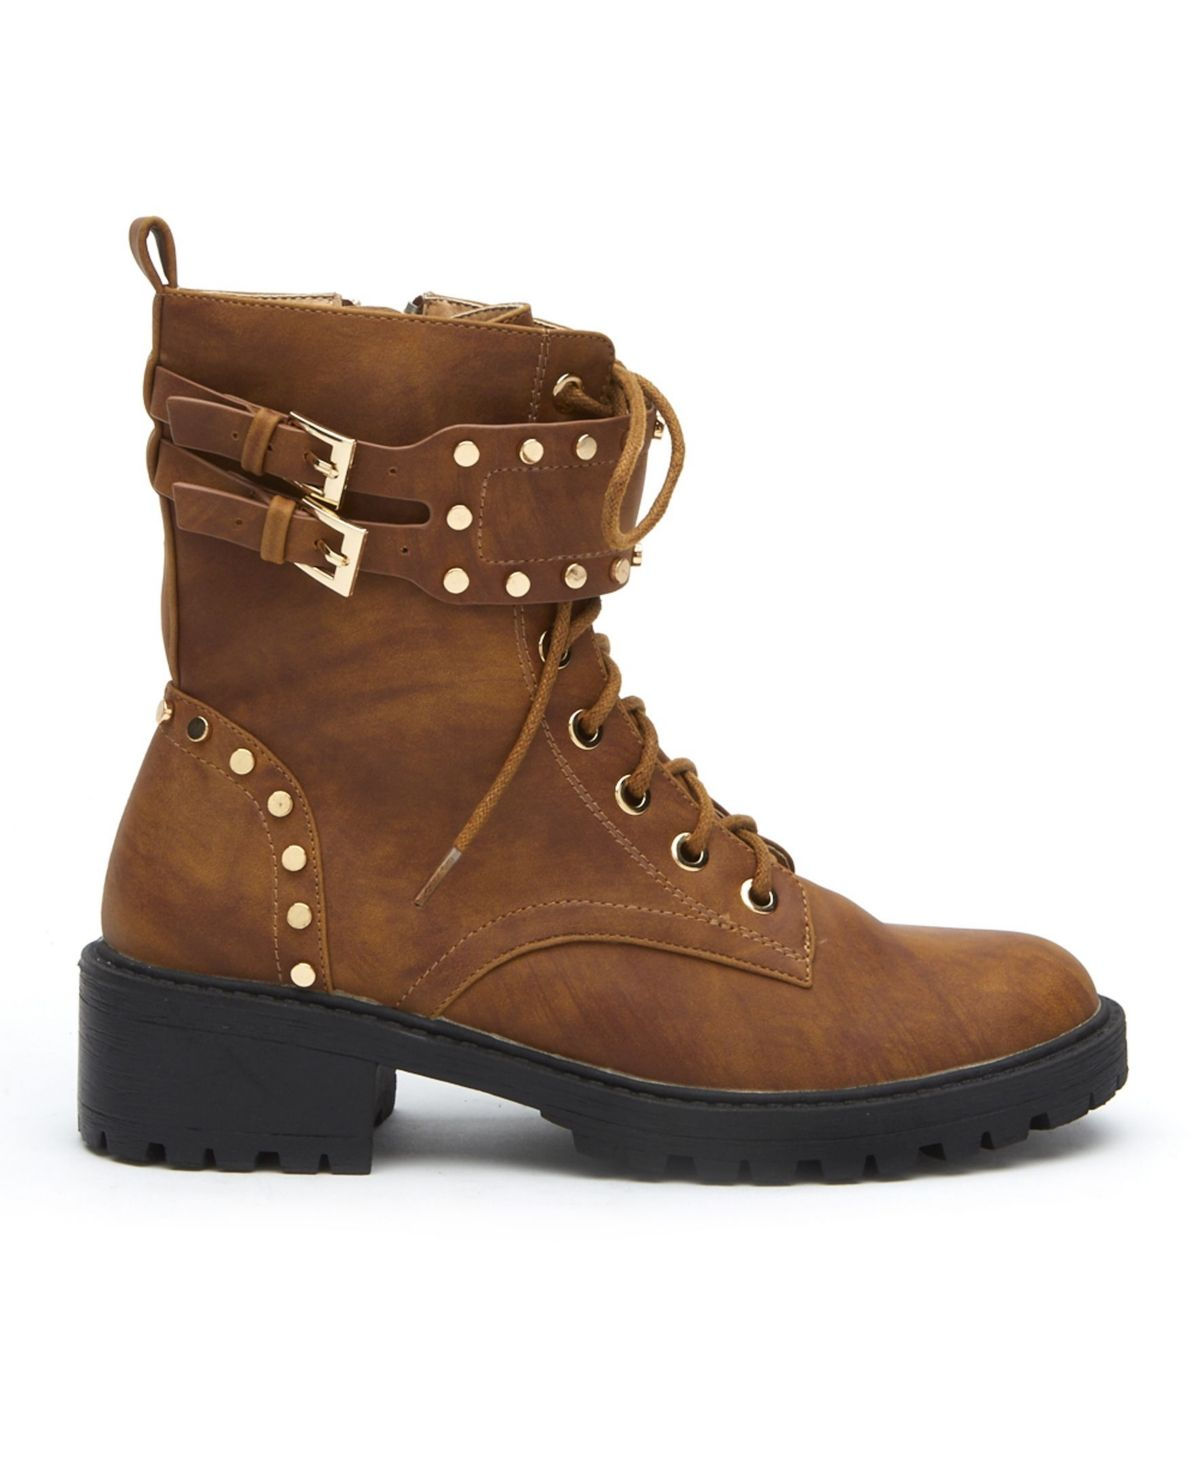 Ugg Ugg Women's Ashbury Lace Up Waterproof Boots Black from Macy's | ShapeShop